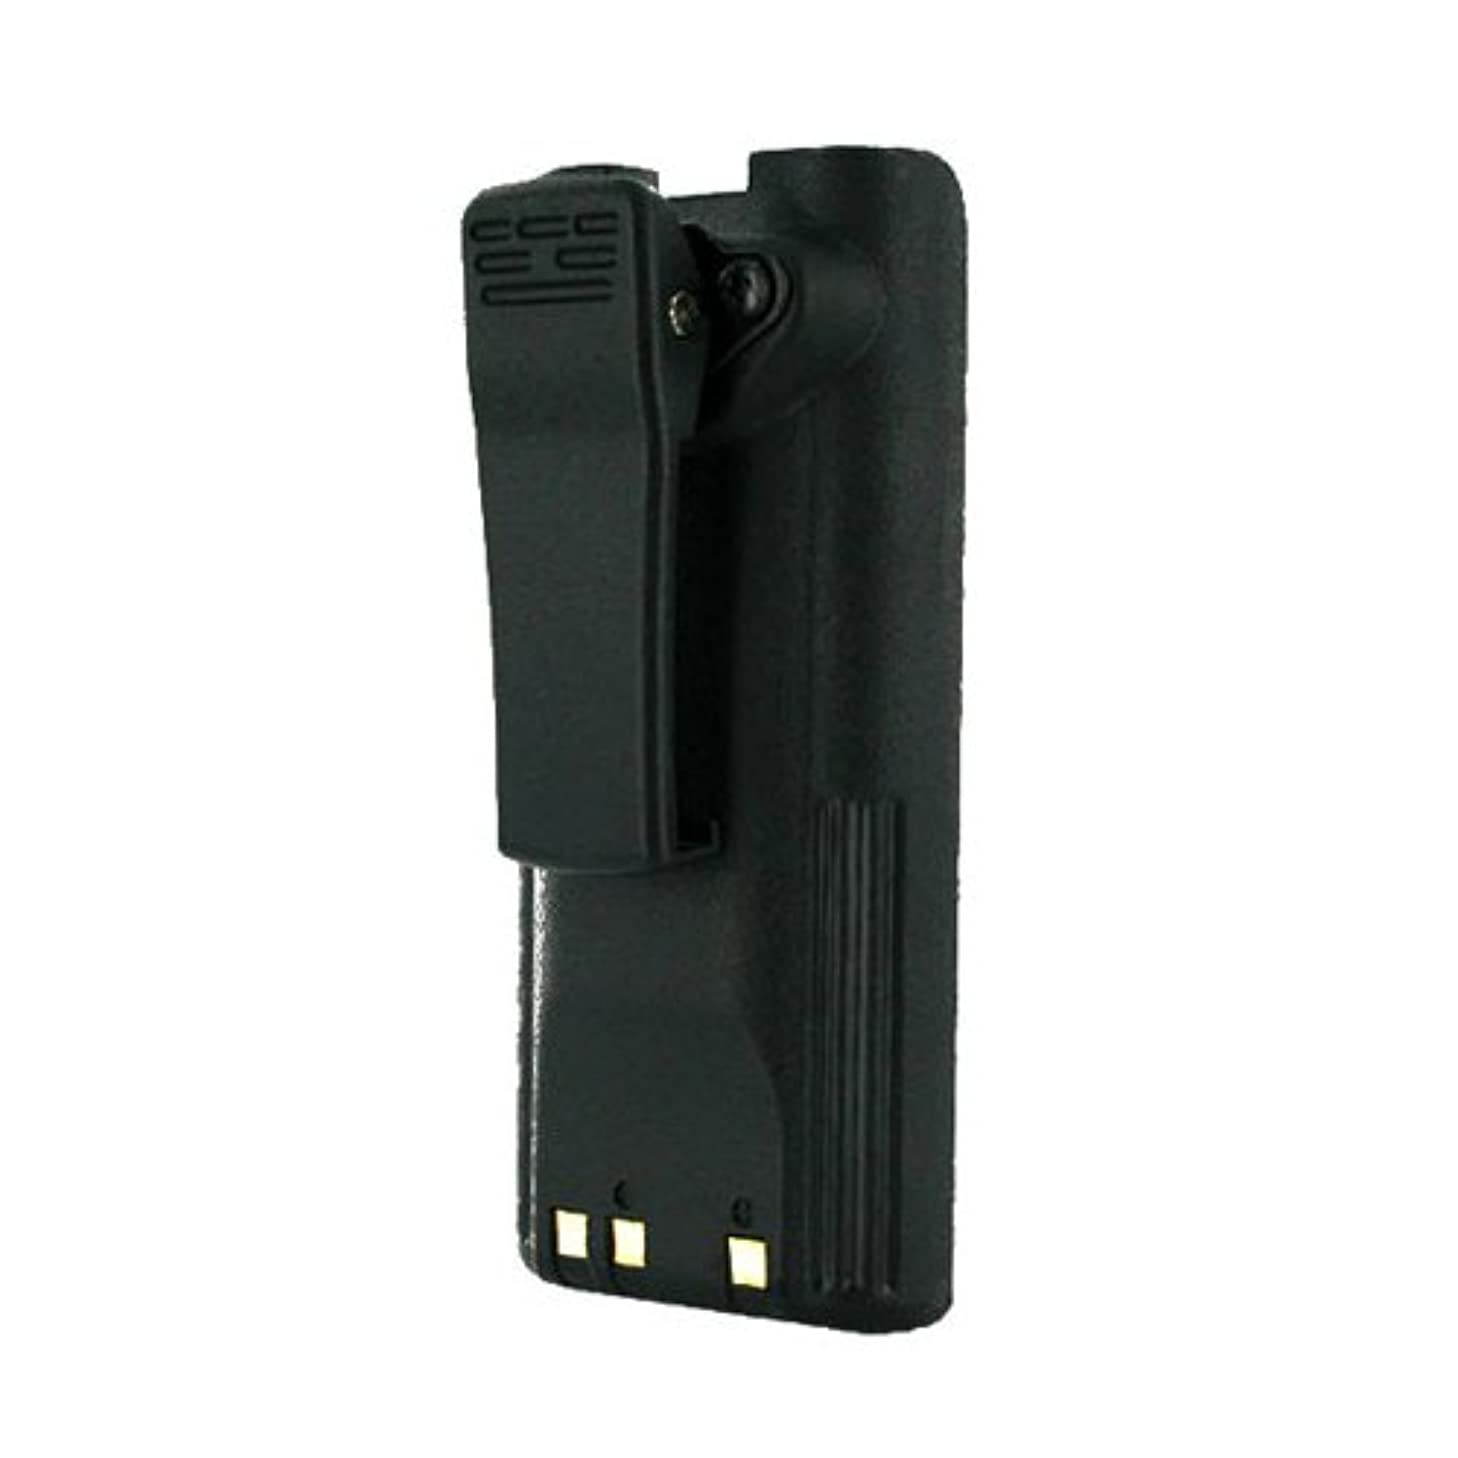 Icom ICT81A 2-Way Radio Battery (Li-Ion 7.4V 2000mAh) Rechargeable Battery - Replacement for Icom BP211 Battery